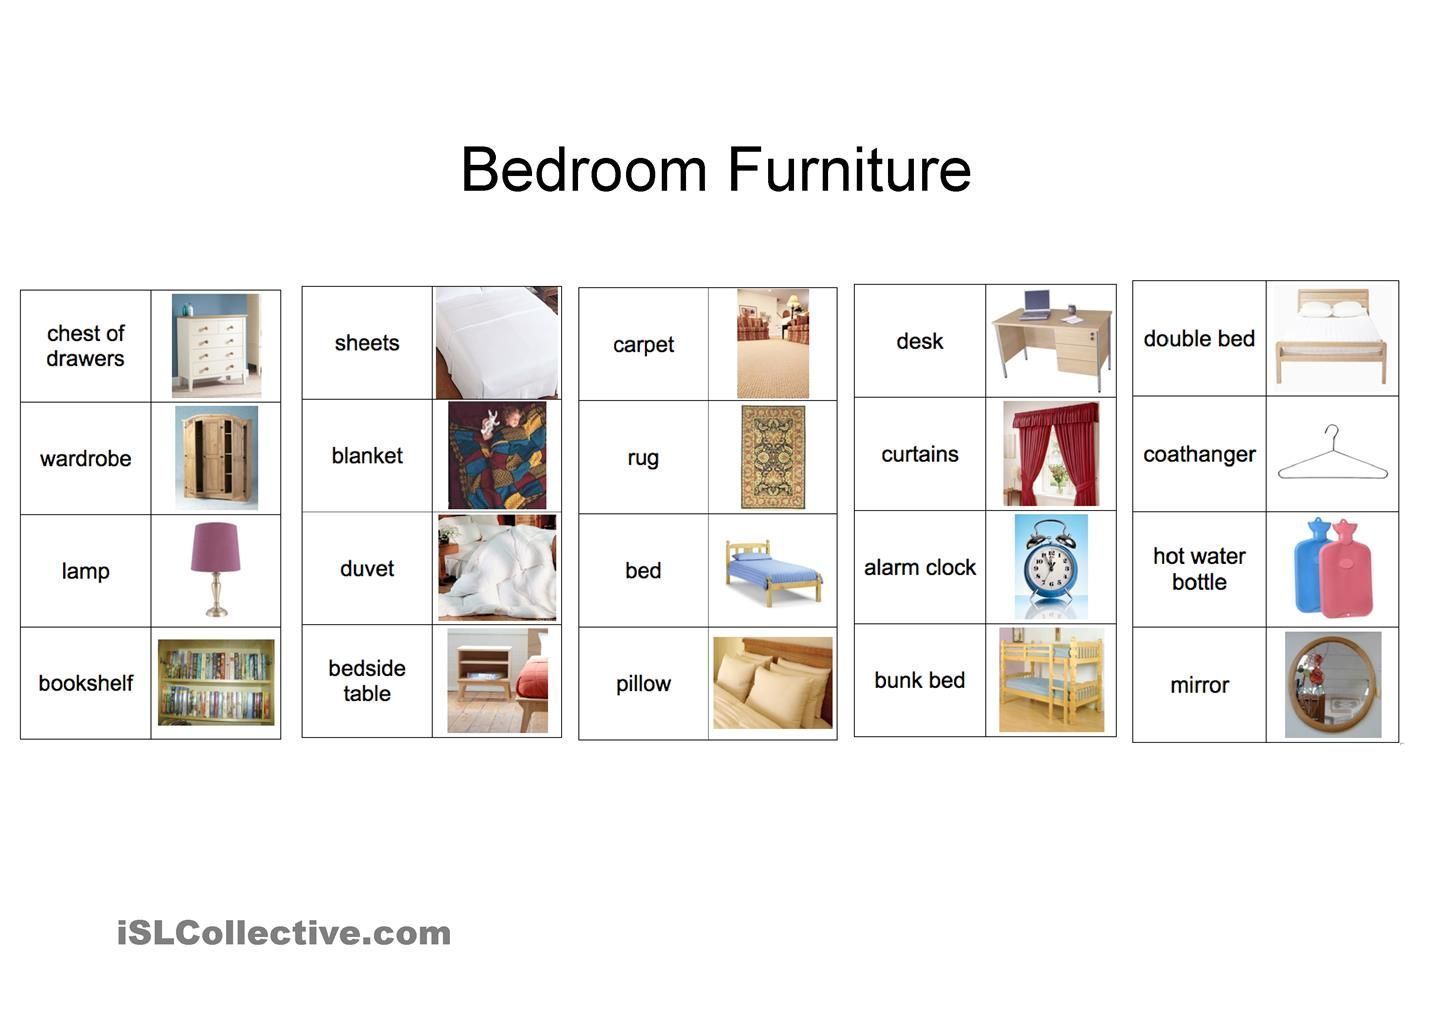 Bedroom Vocabulary Bedroomfurniturevocabulary